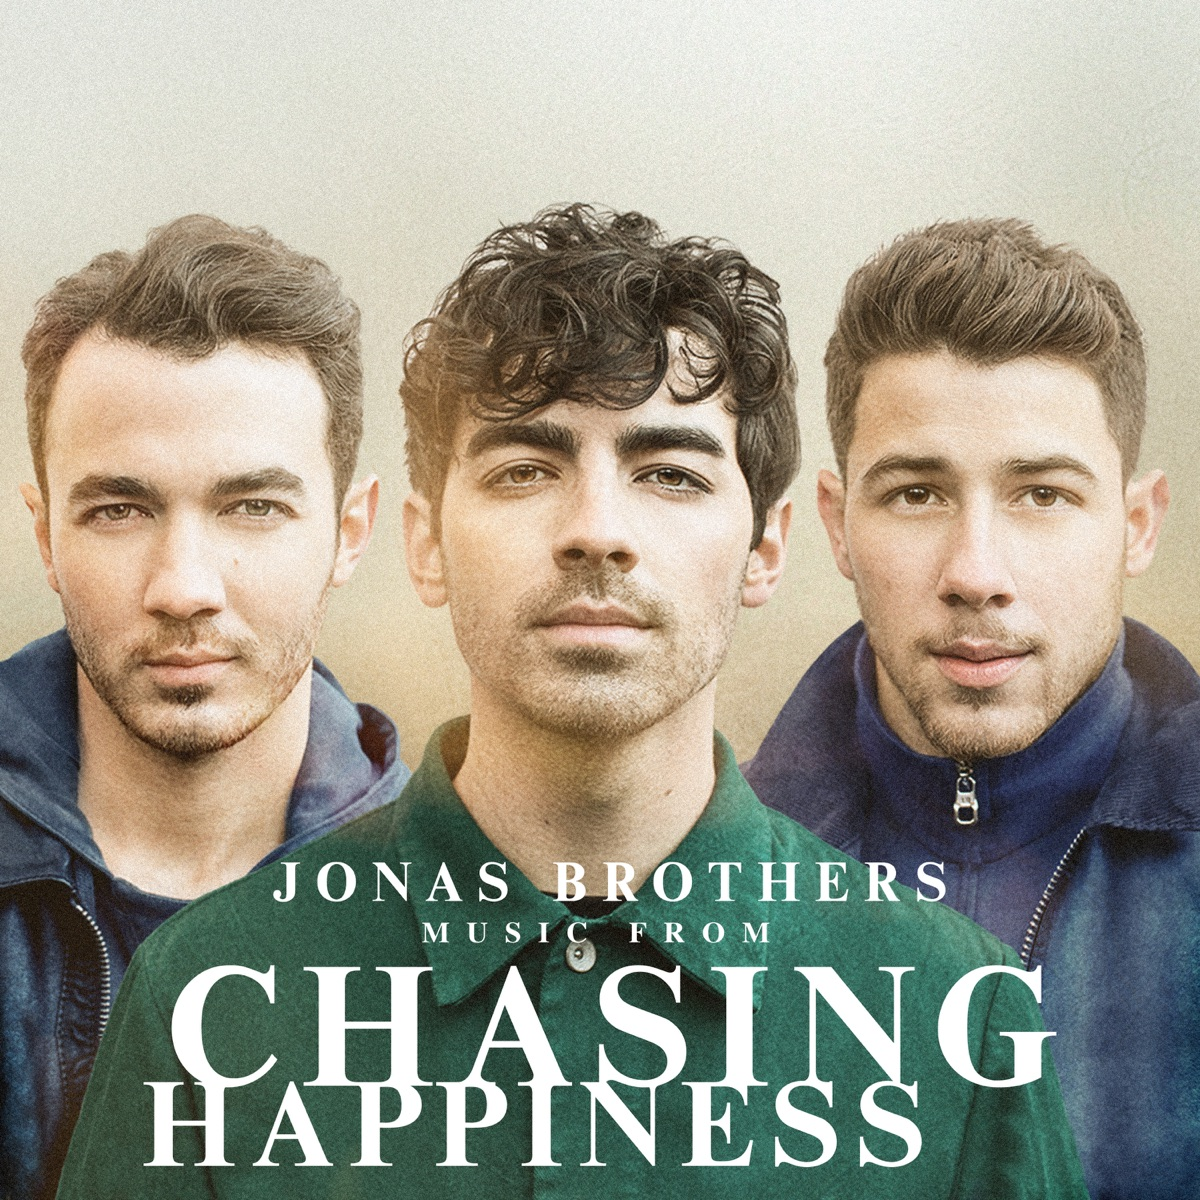 Music from Chasing Happiness Jonas Brothers CD cover